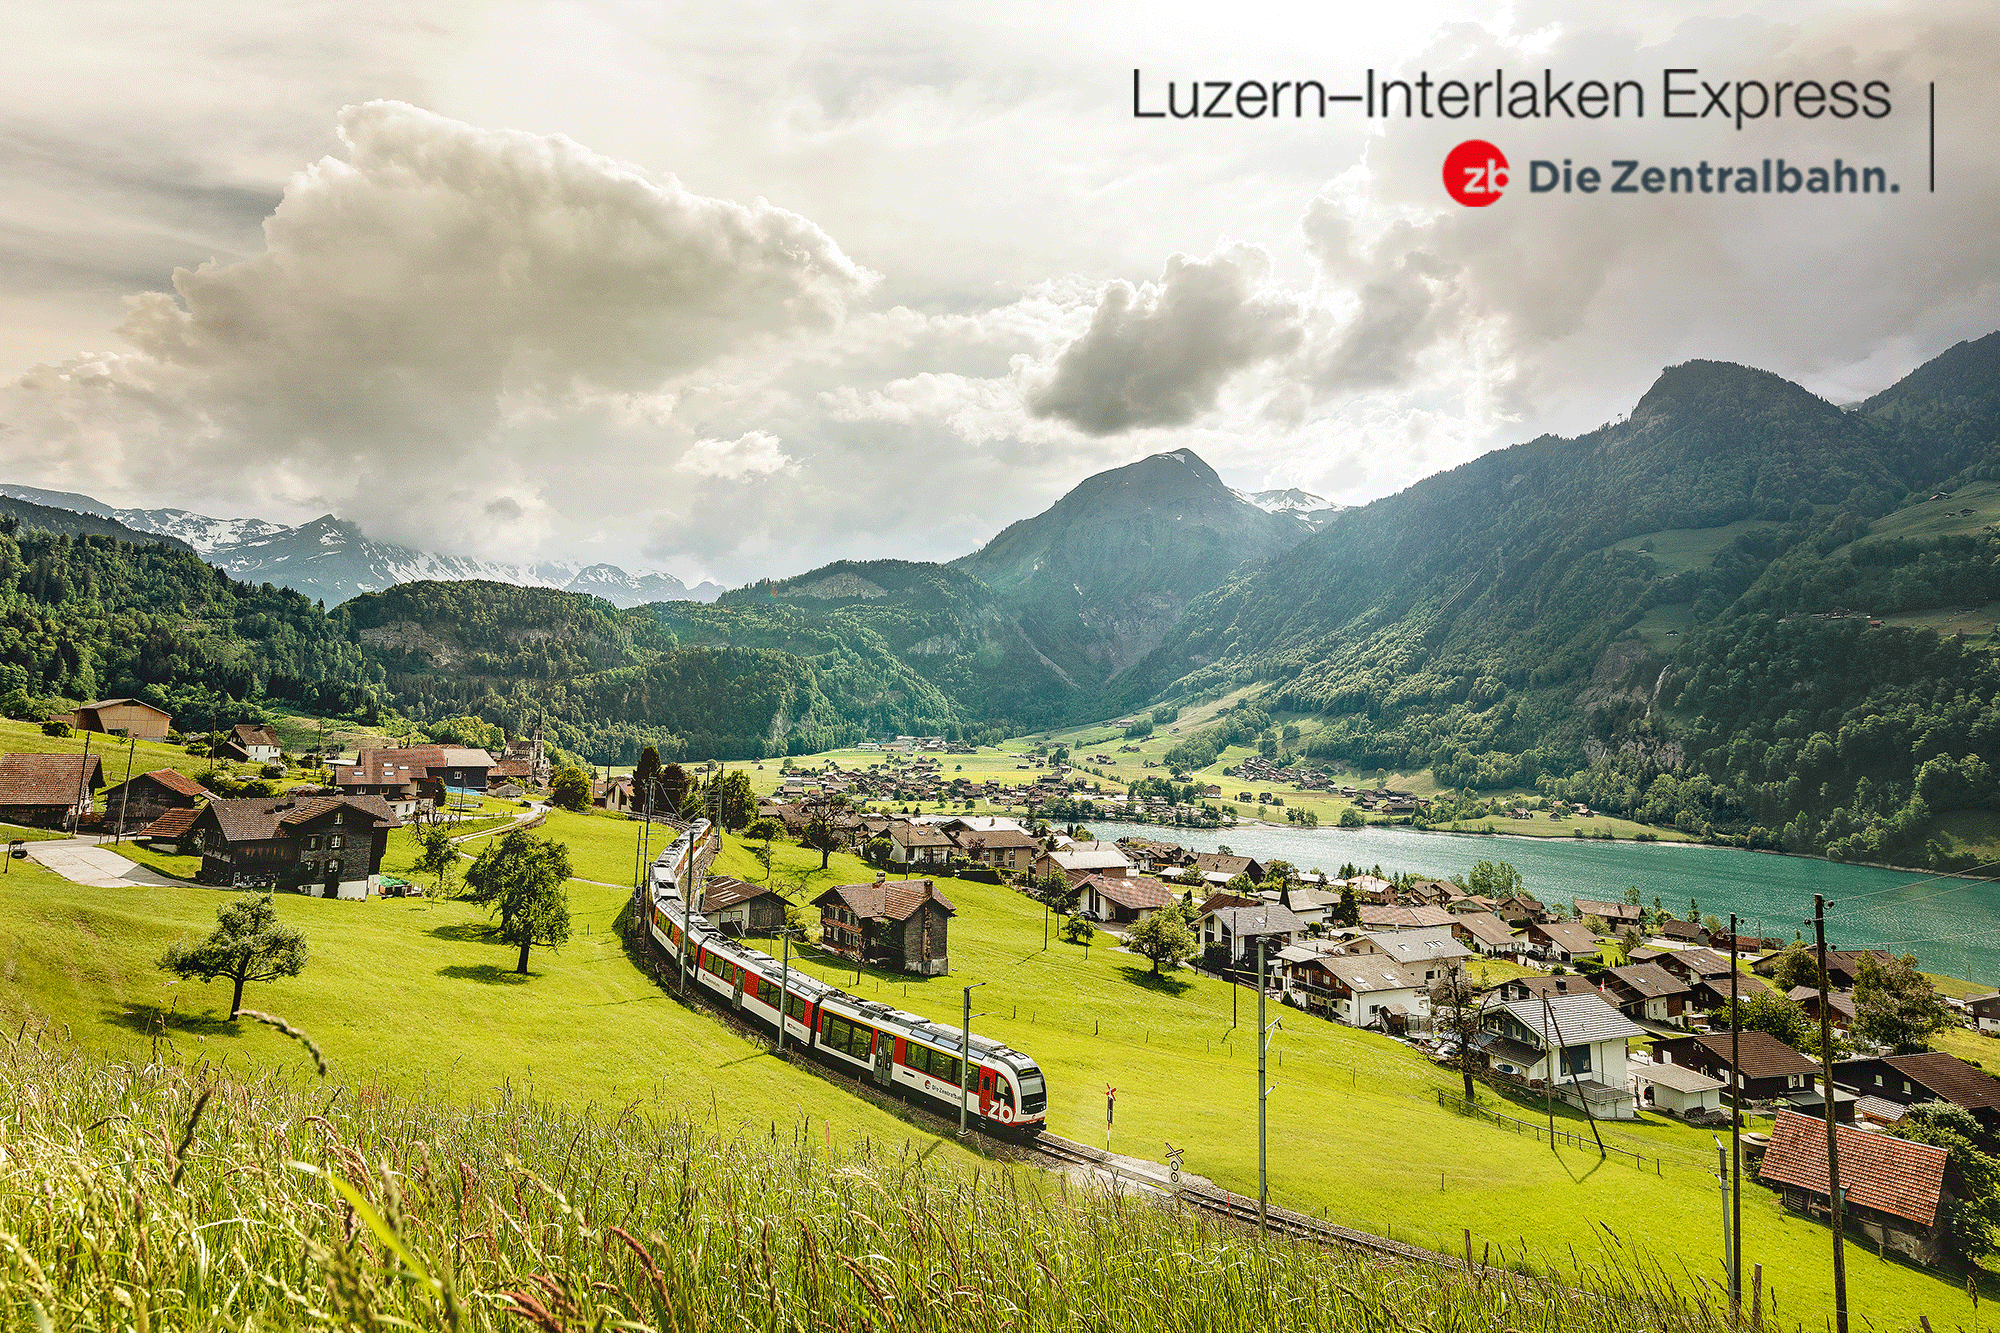 Luzern–Interlaken Express